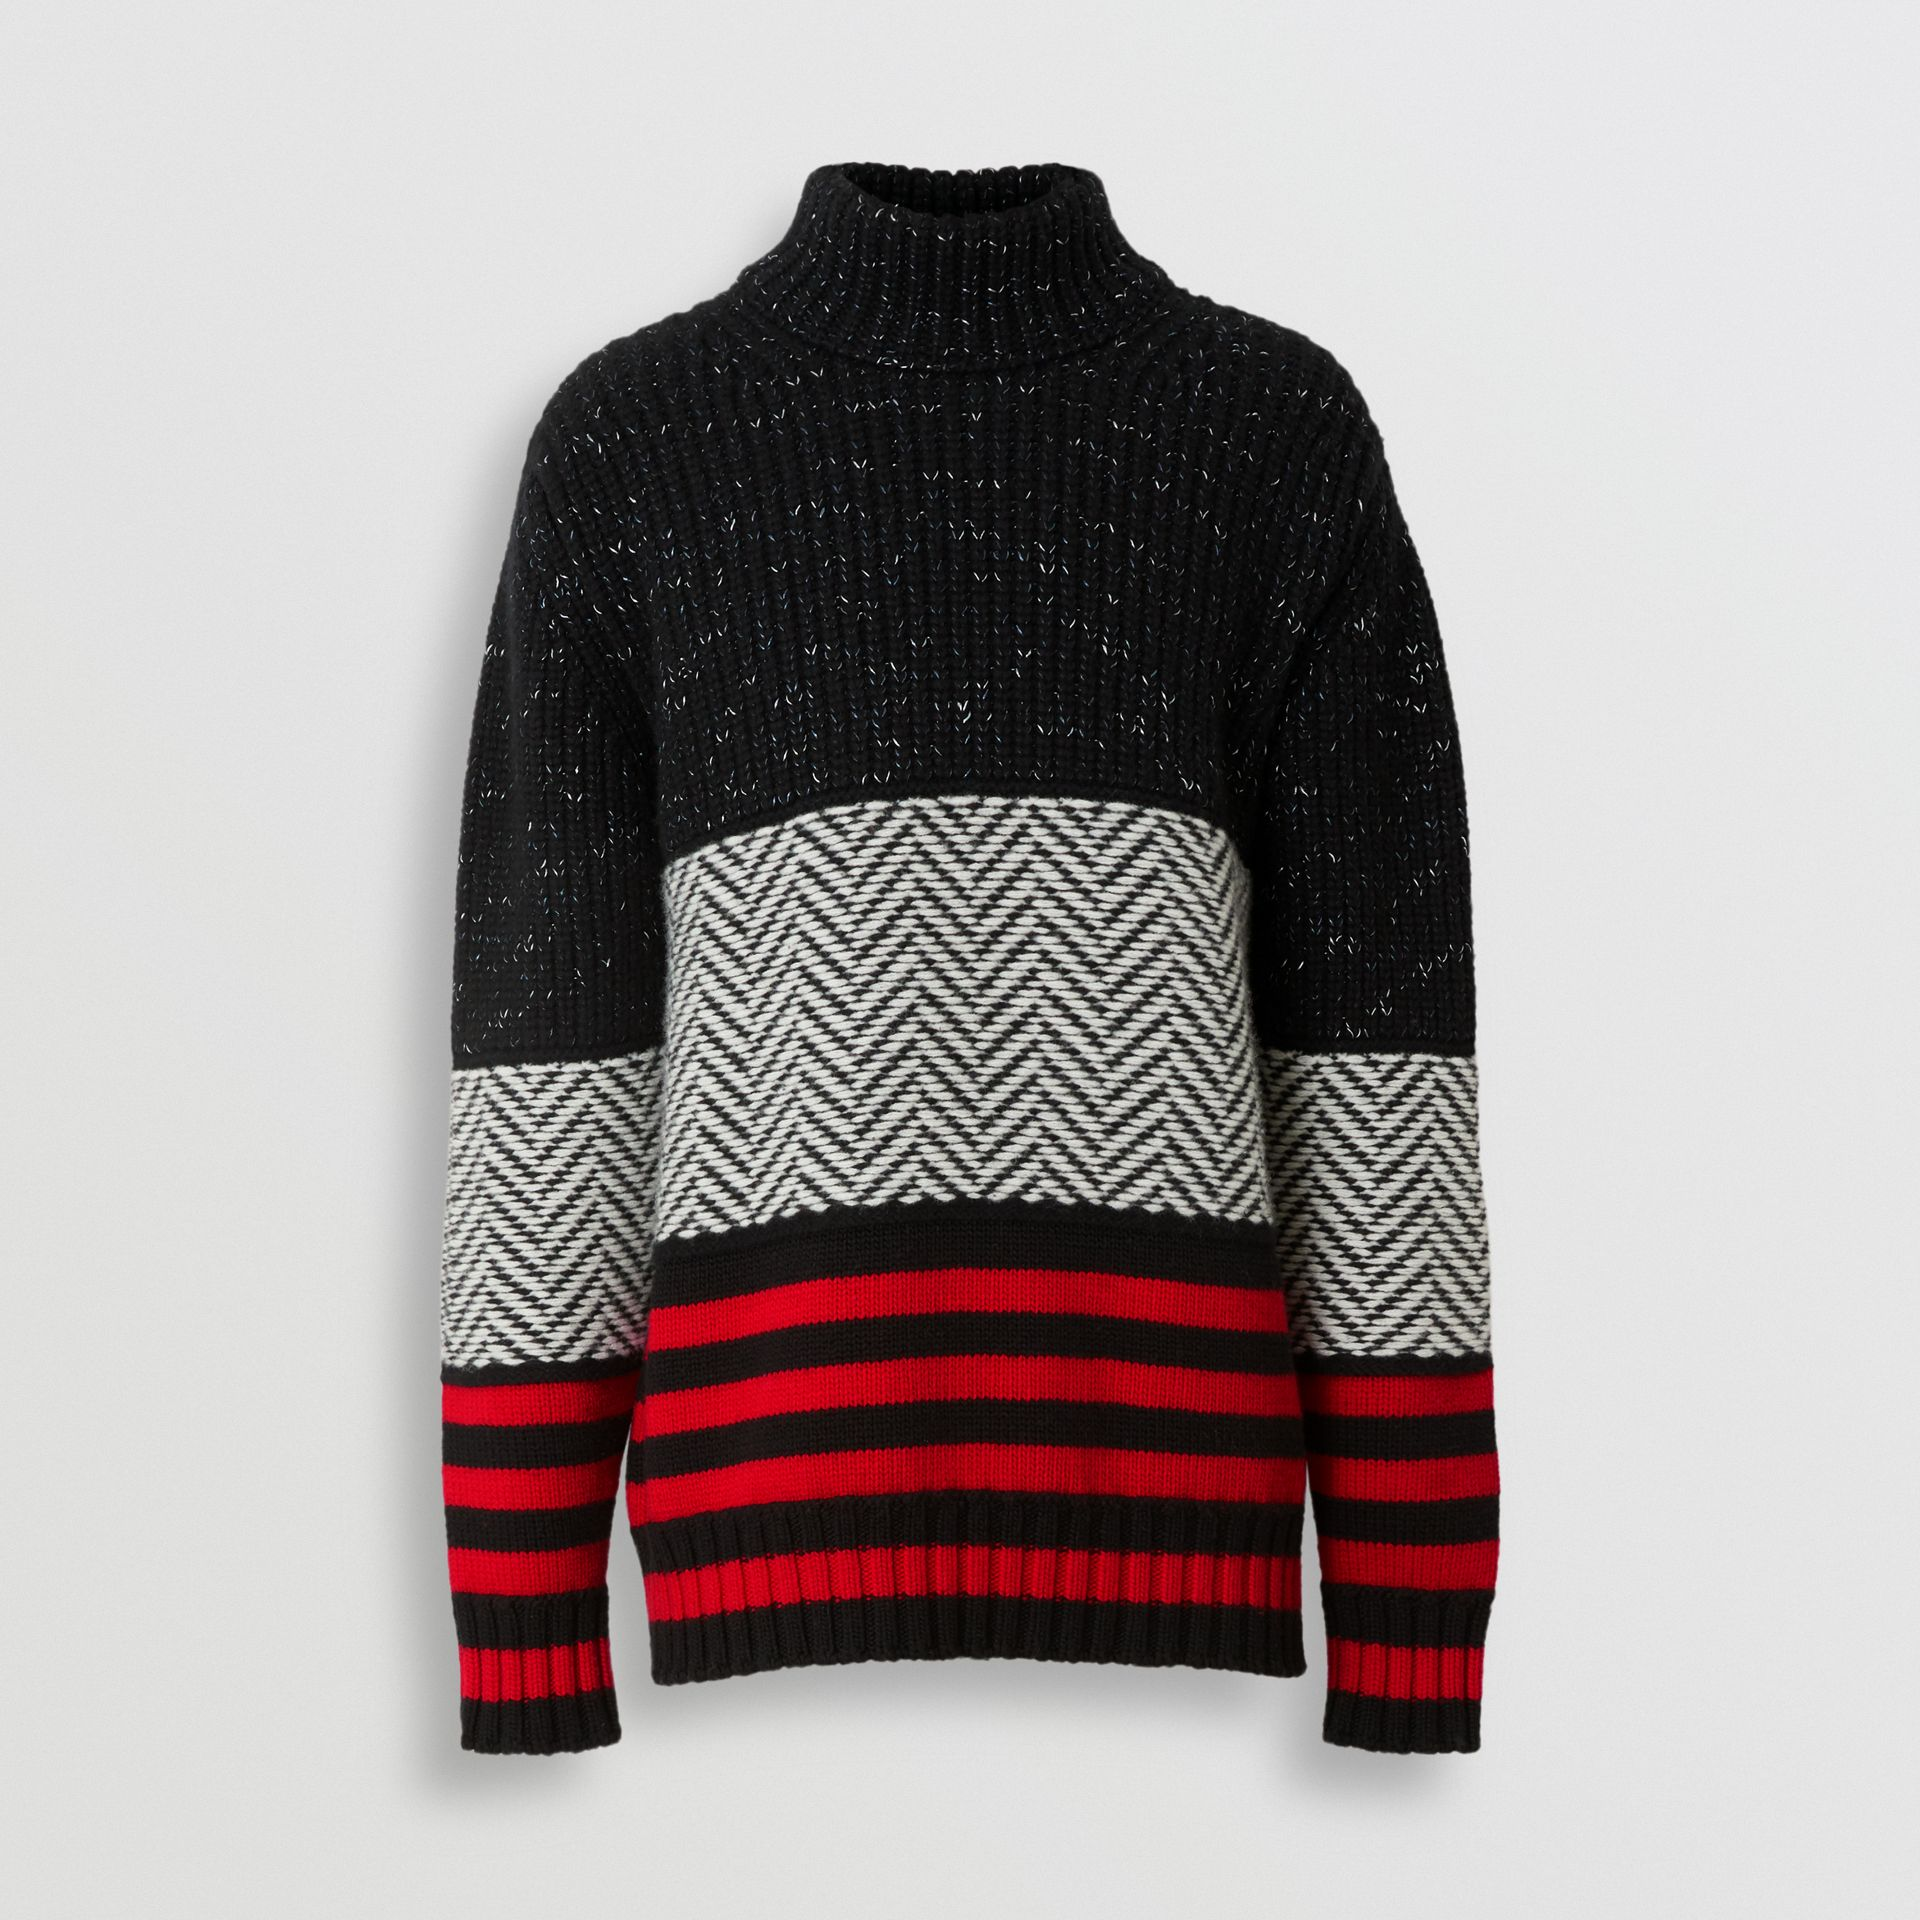 Contrast Knit Wool Cashmere Blend Sweater in Black - Men | Burberry United States - gallery image 3